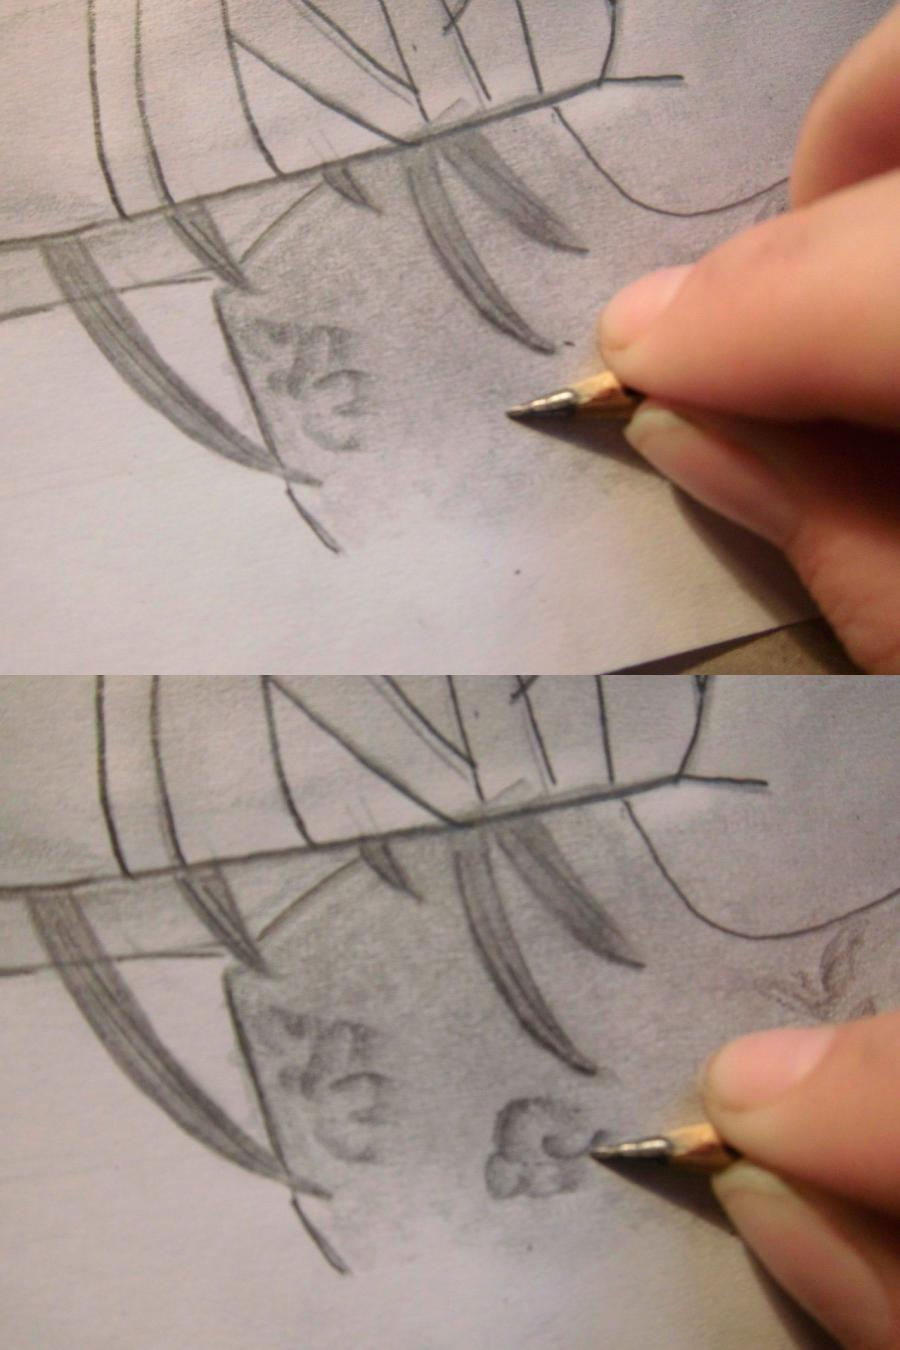 How to draw Charlie (Sharli) from Fairy Tail with a pencil step by step 10